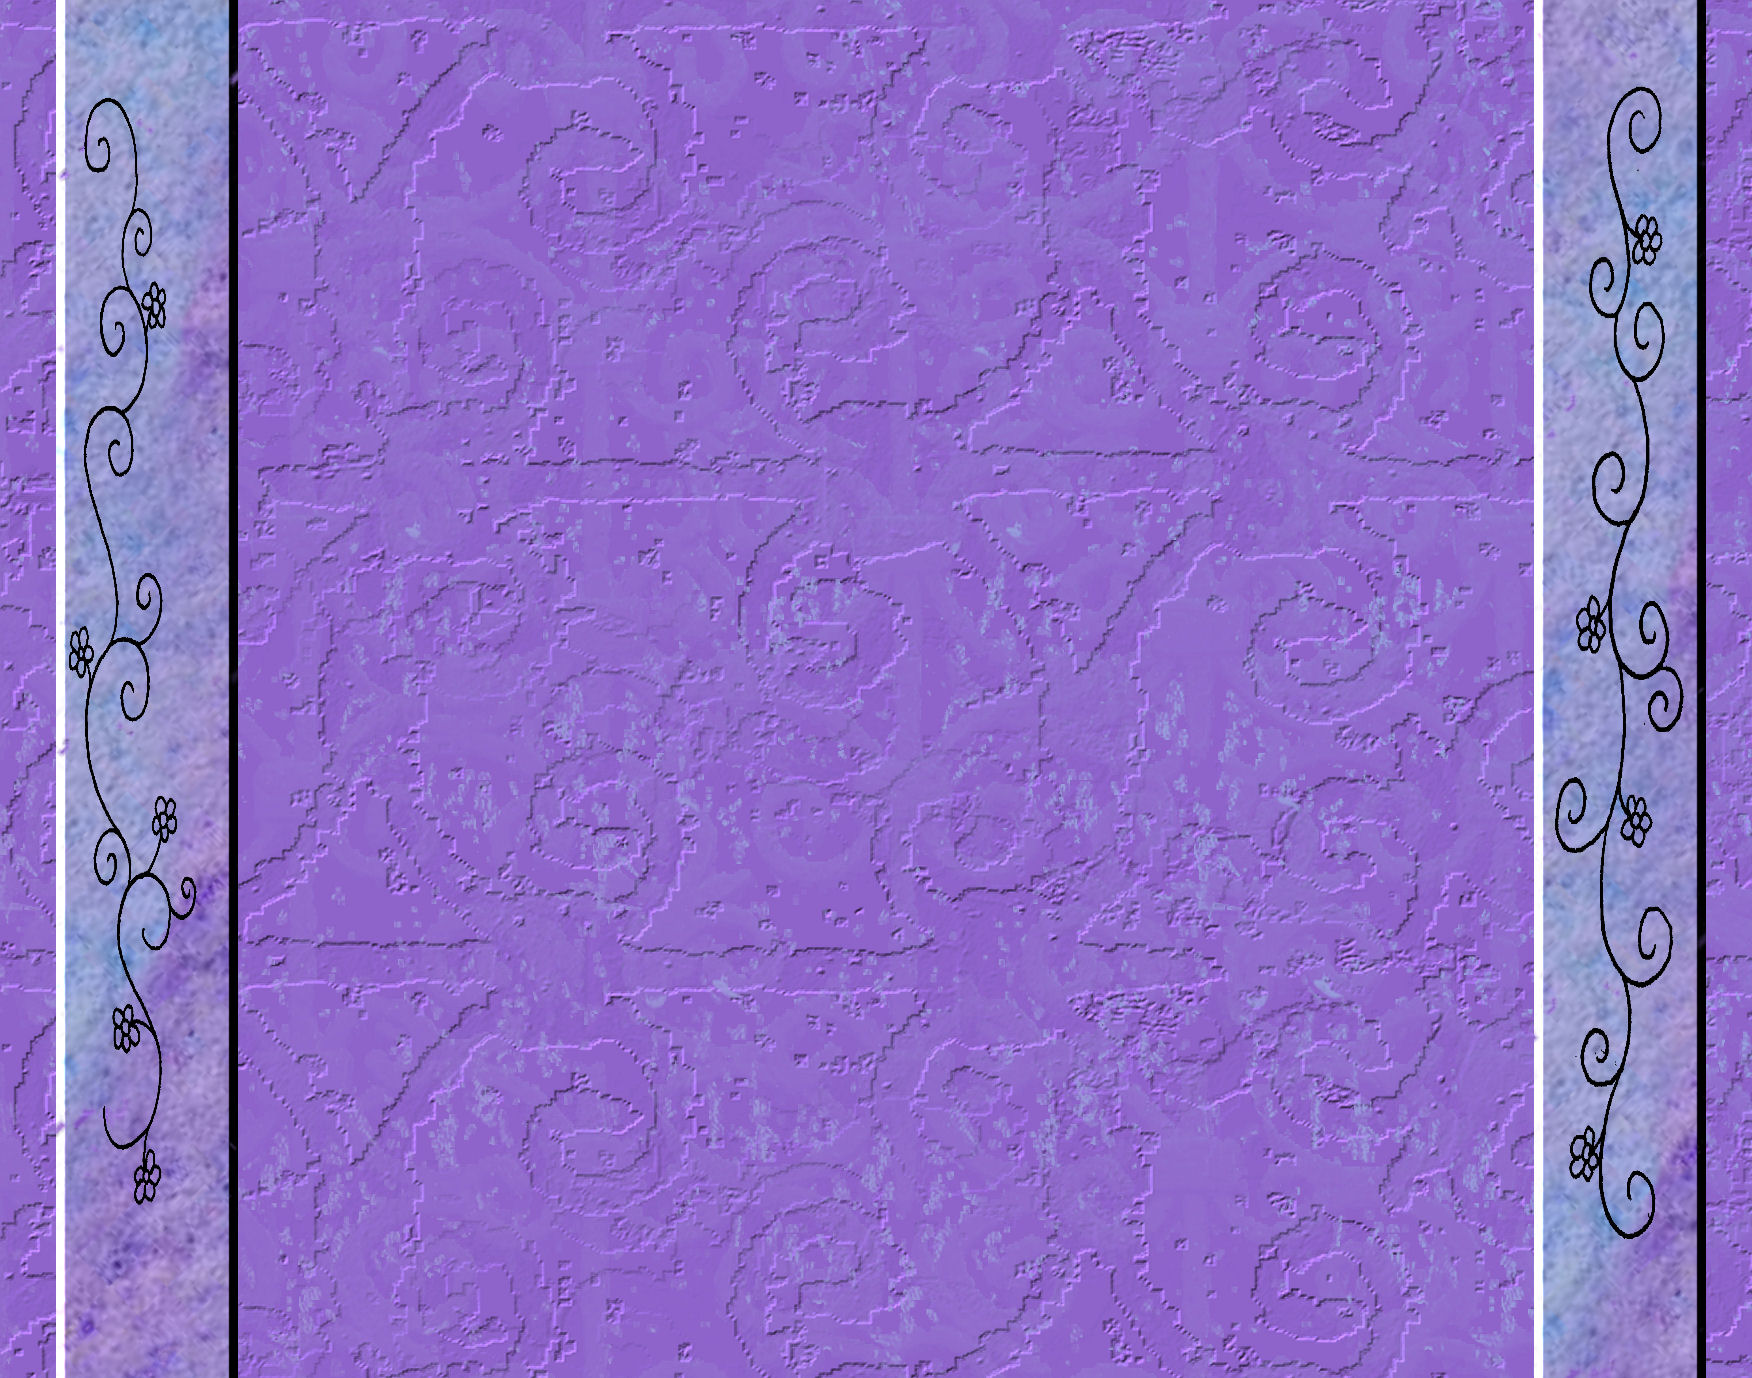 Lavender Background Wedding Images Pictures   Becuo 1752x1378